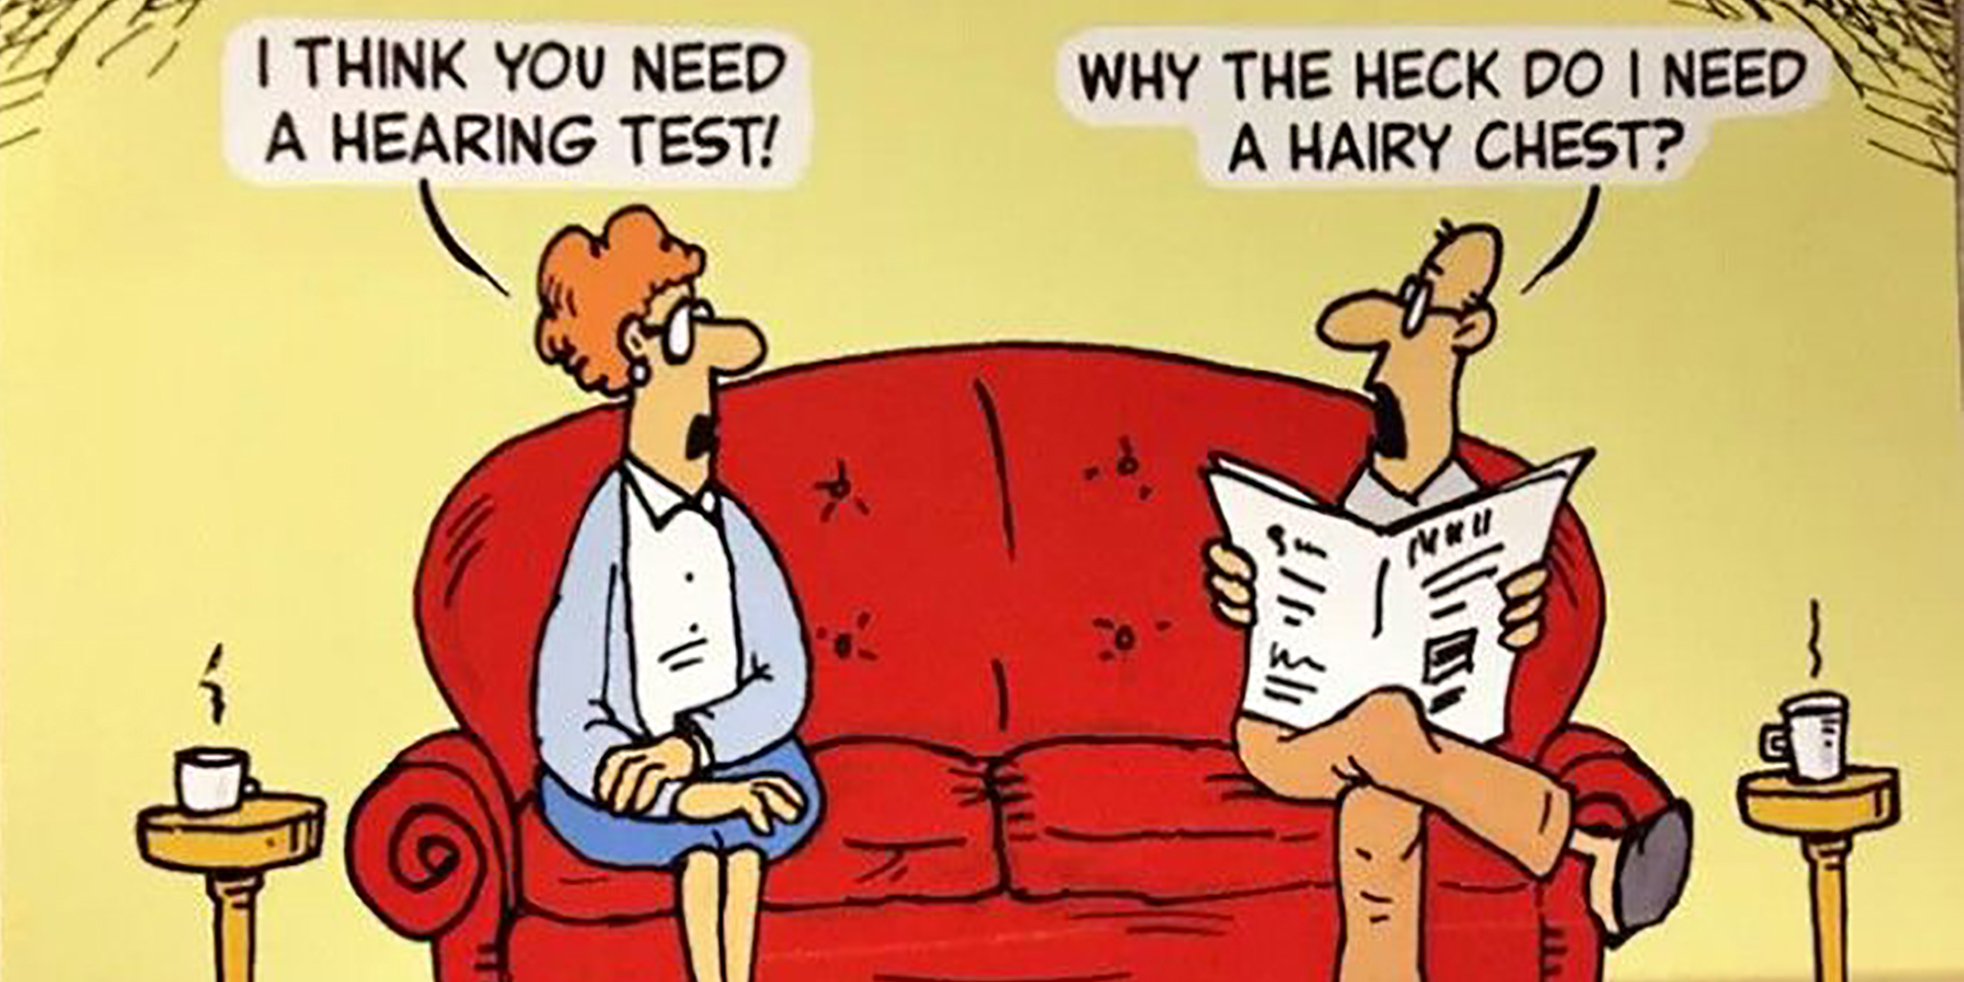 In pictures: 11 funny jokes about hearing